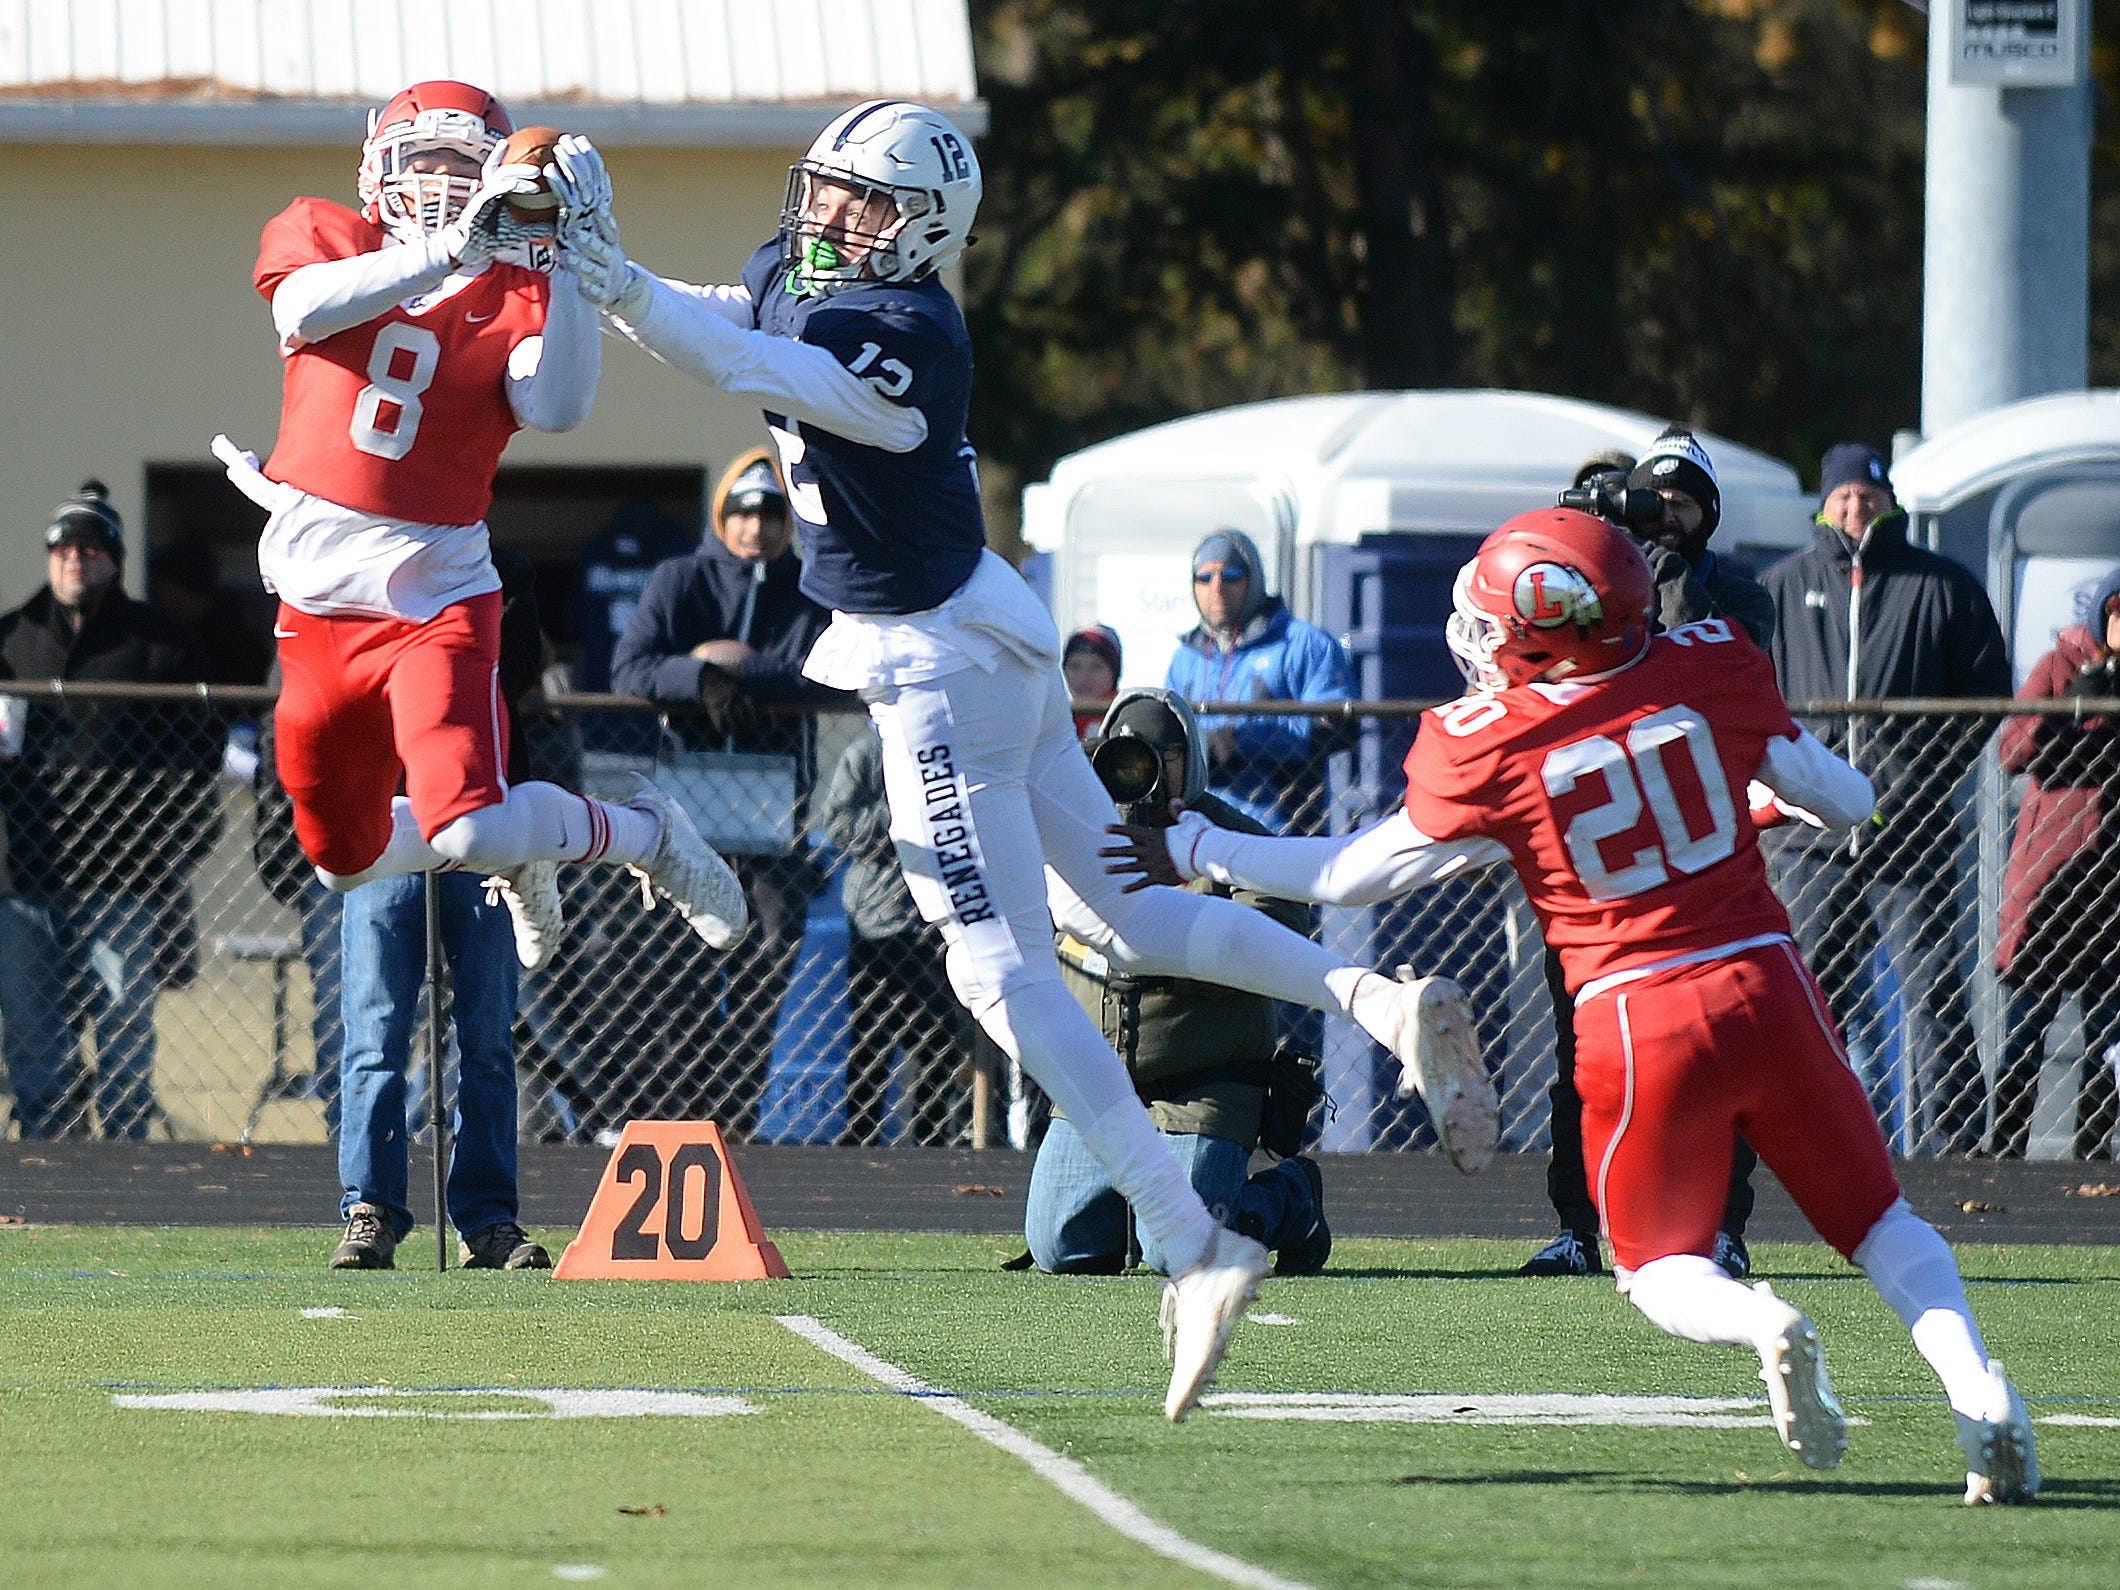 Lenape's Amir Byrd intercepts a pass intended for Shawnee's Nate Summerville during the Thanksgiving Day football game at Shawnee High School, Thursday, Nov. 22, 2018.